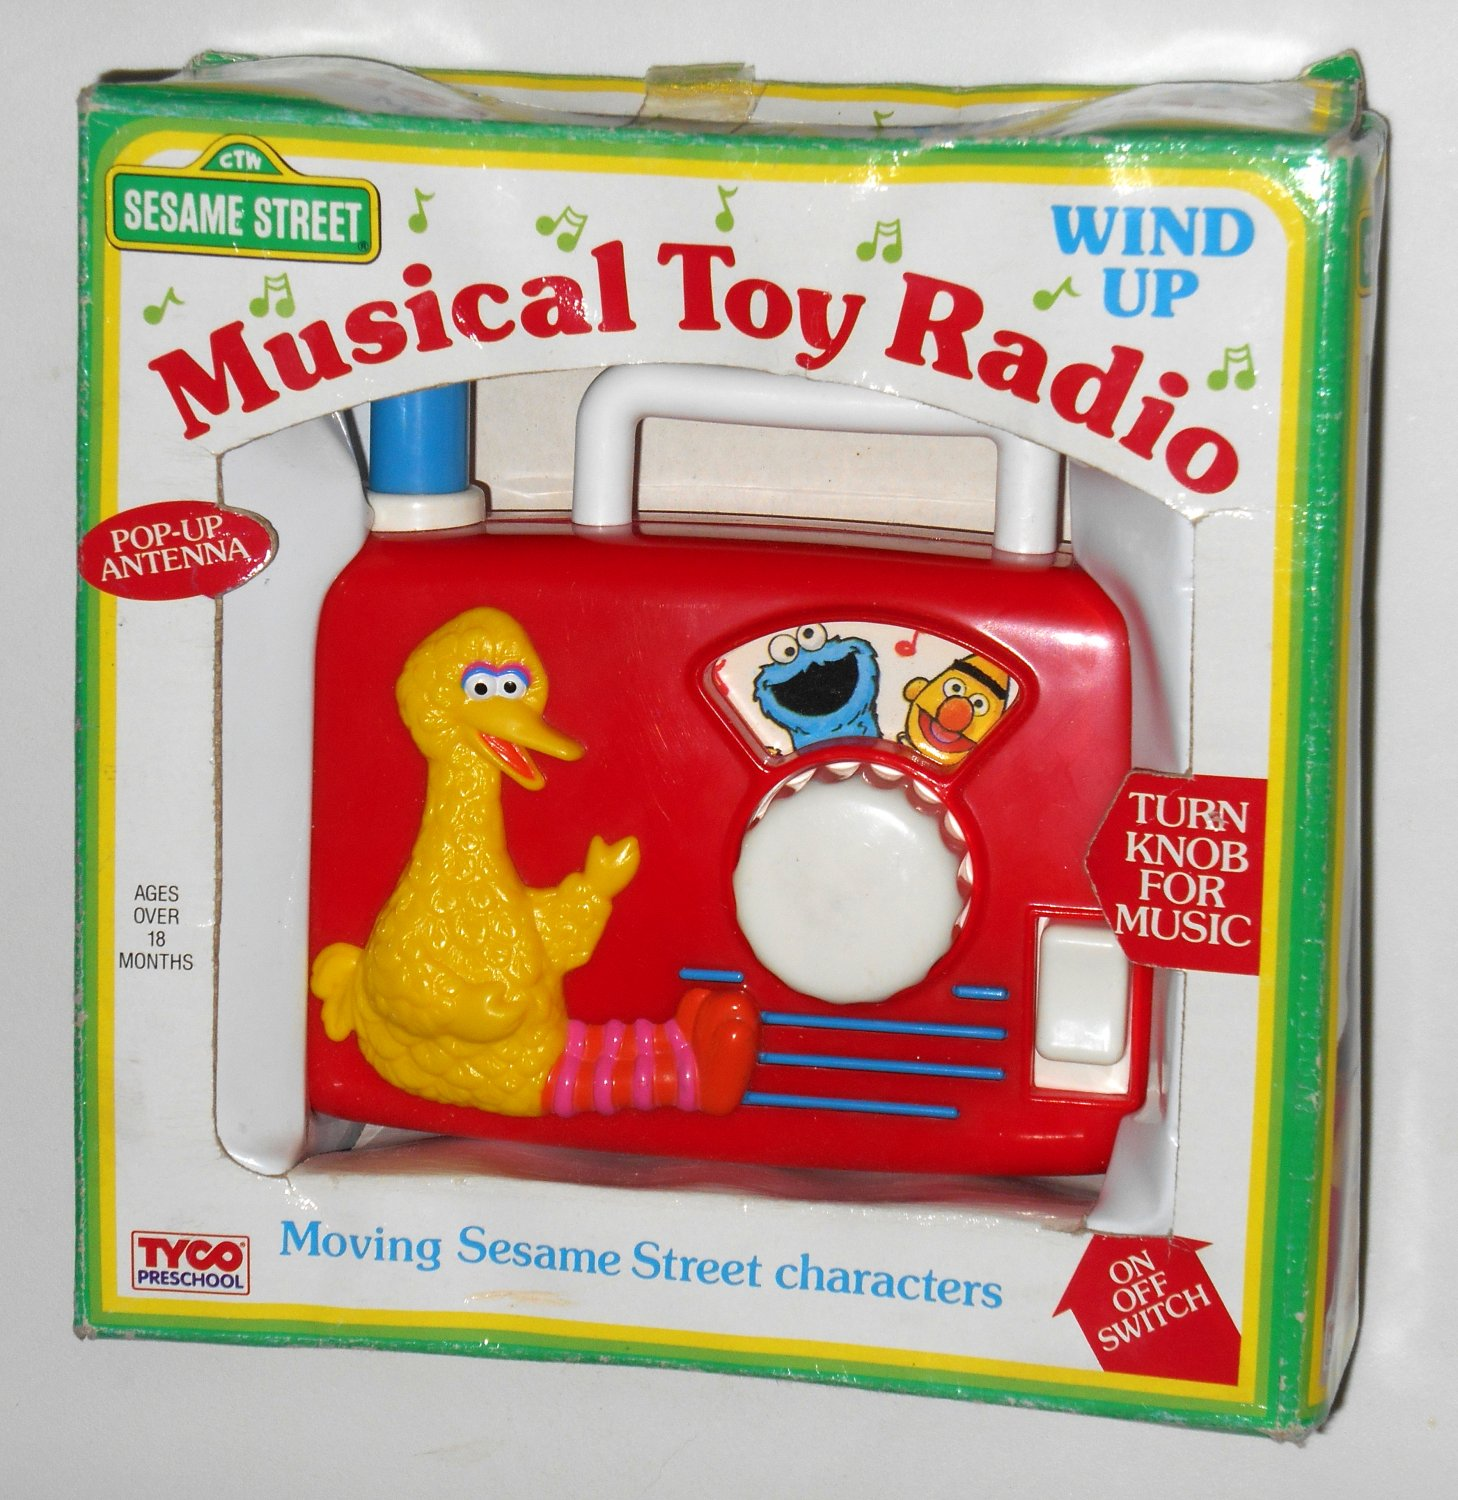 Sesame Street Musical Toys : Sesame street musical toy wind up radio tyco preschool